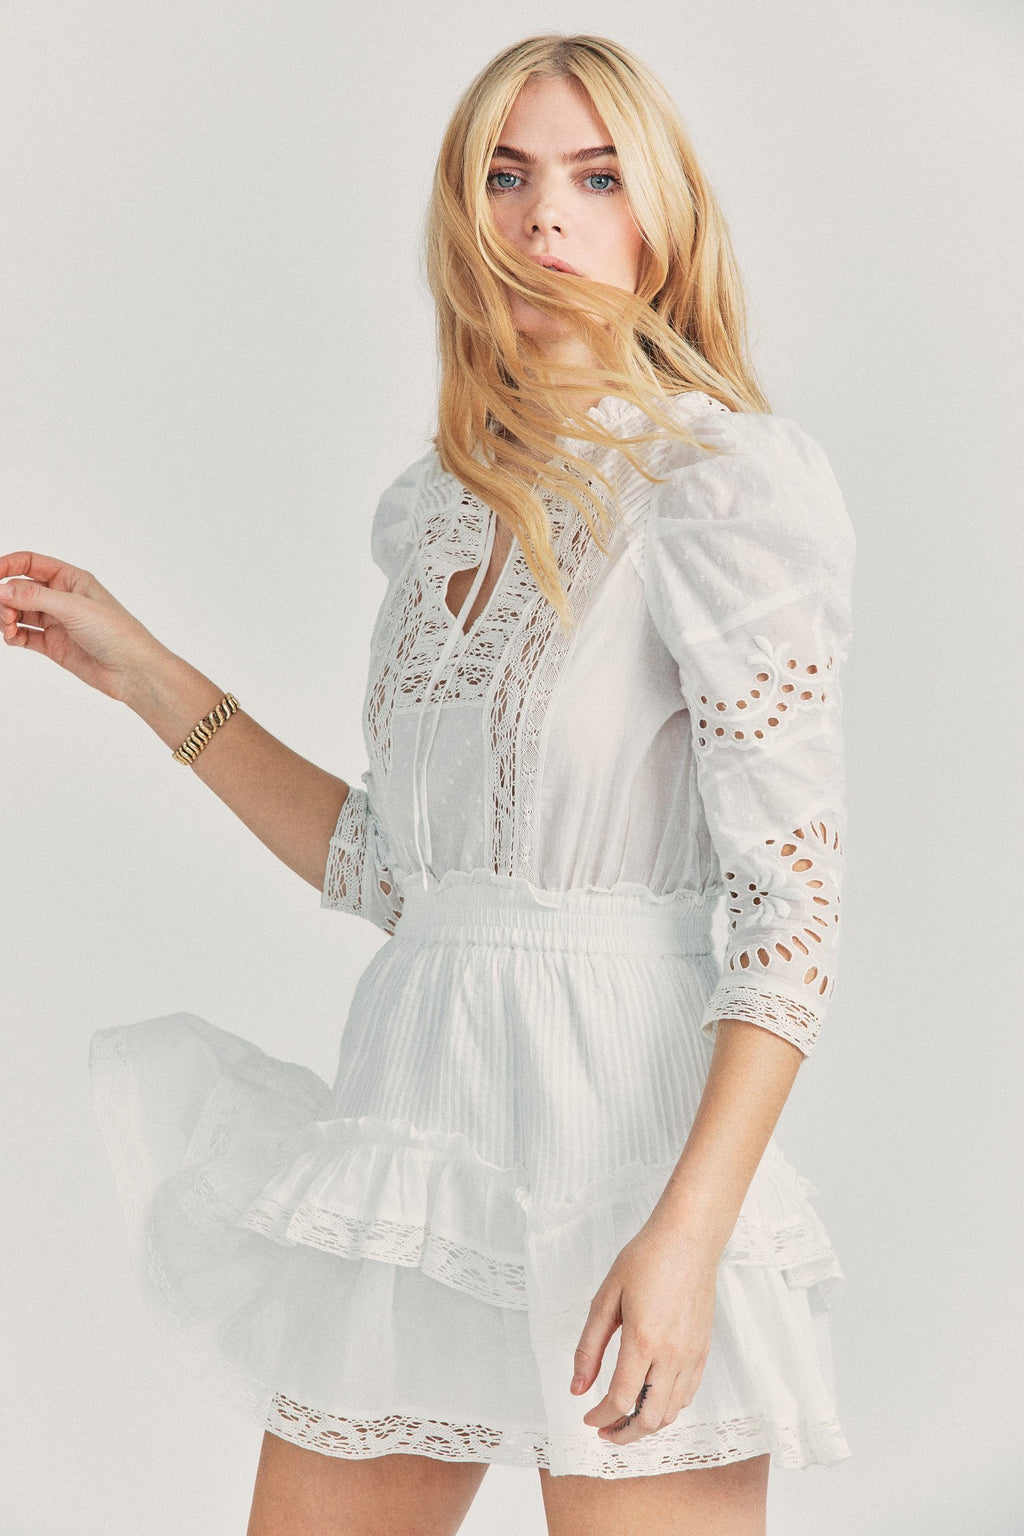 Loveshackfancy Isidore Cotton- Broderie Mini Dress in White